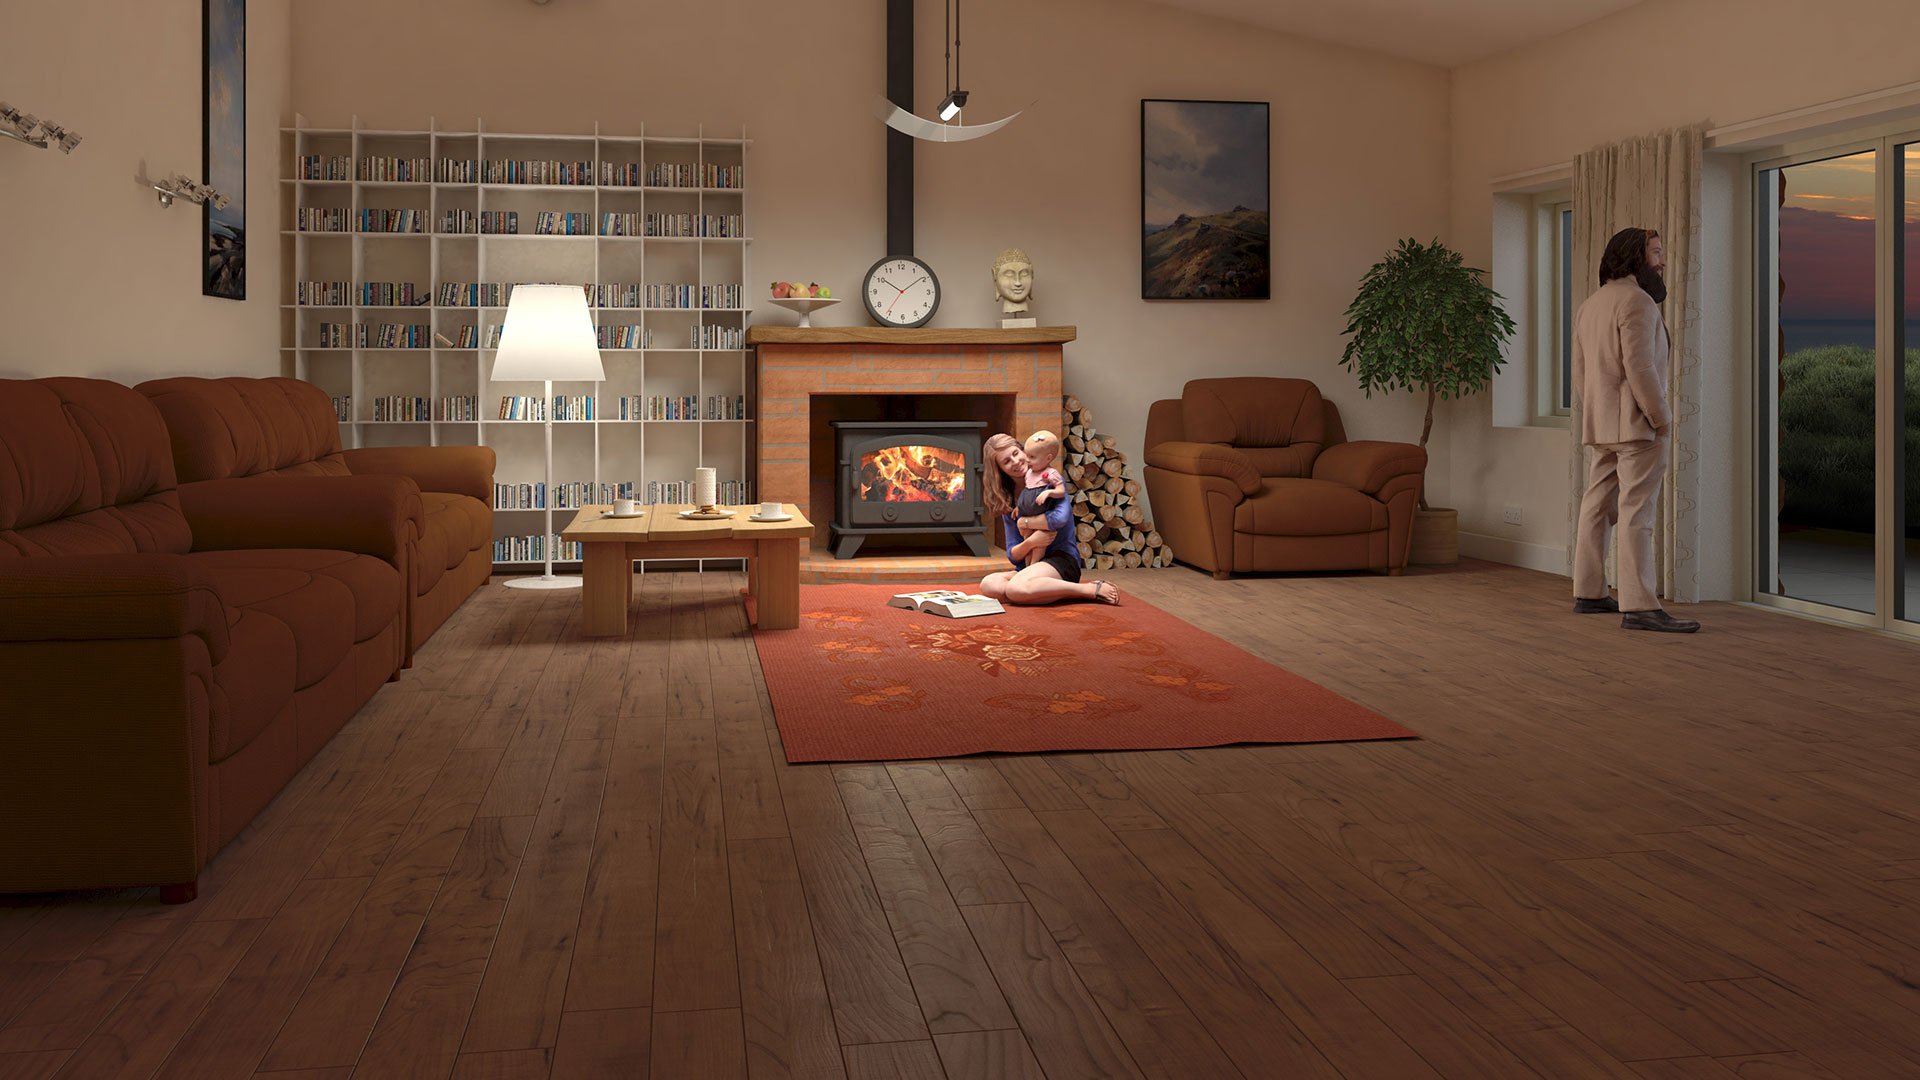 interior CGI view of a proposed luxury house